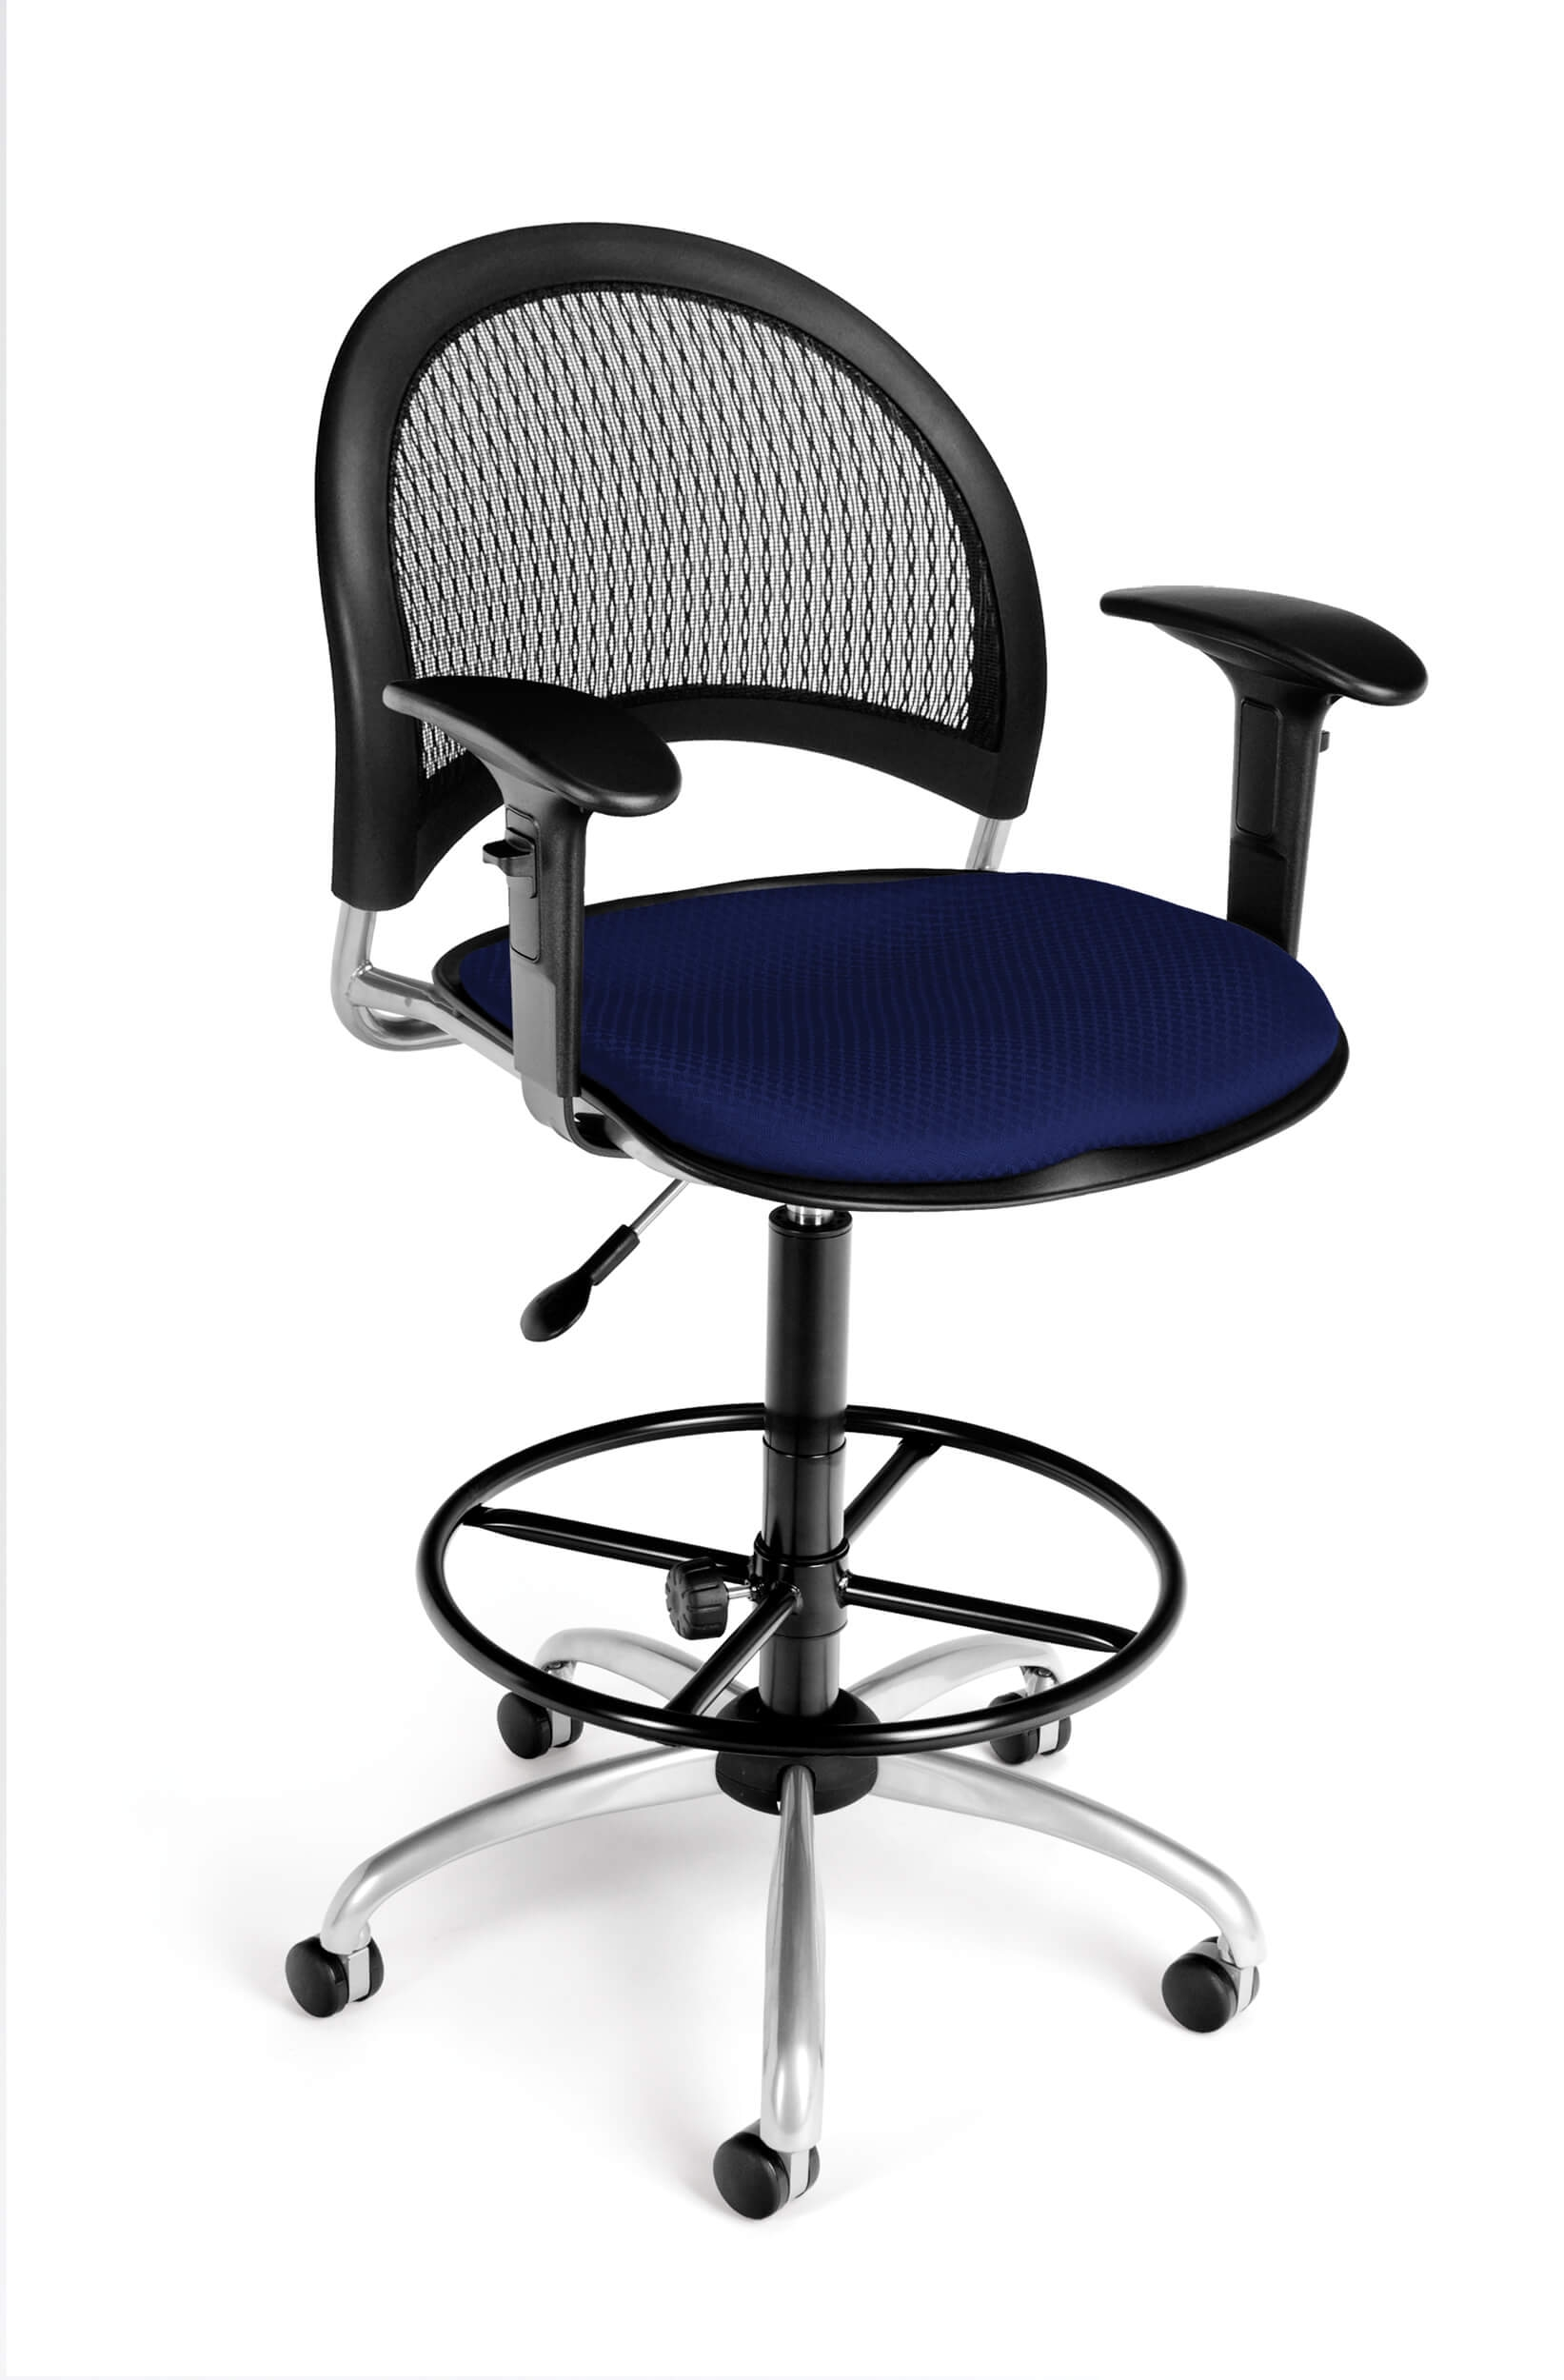 cool-office-chairs-drafting-chair-with-arms.jpg